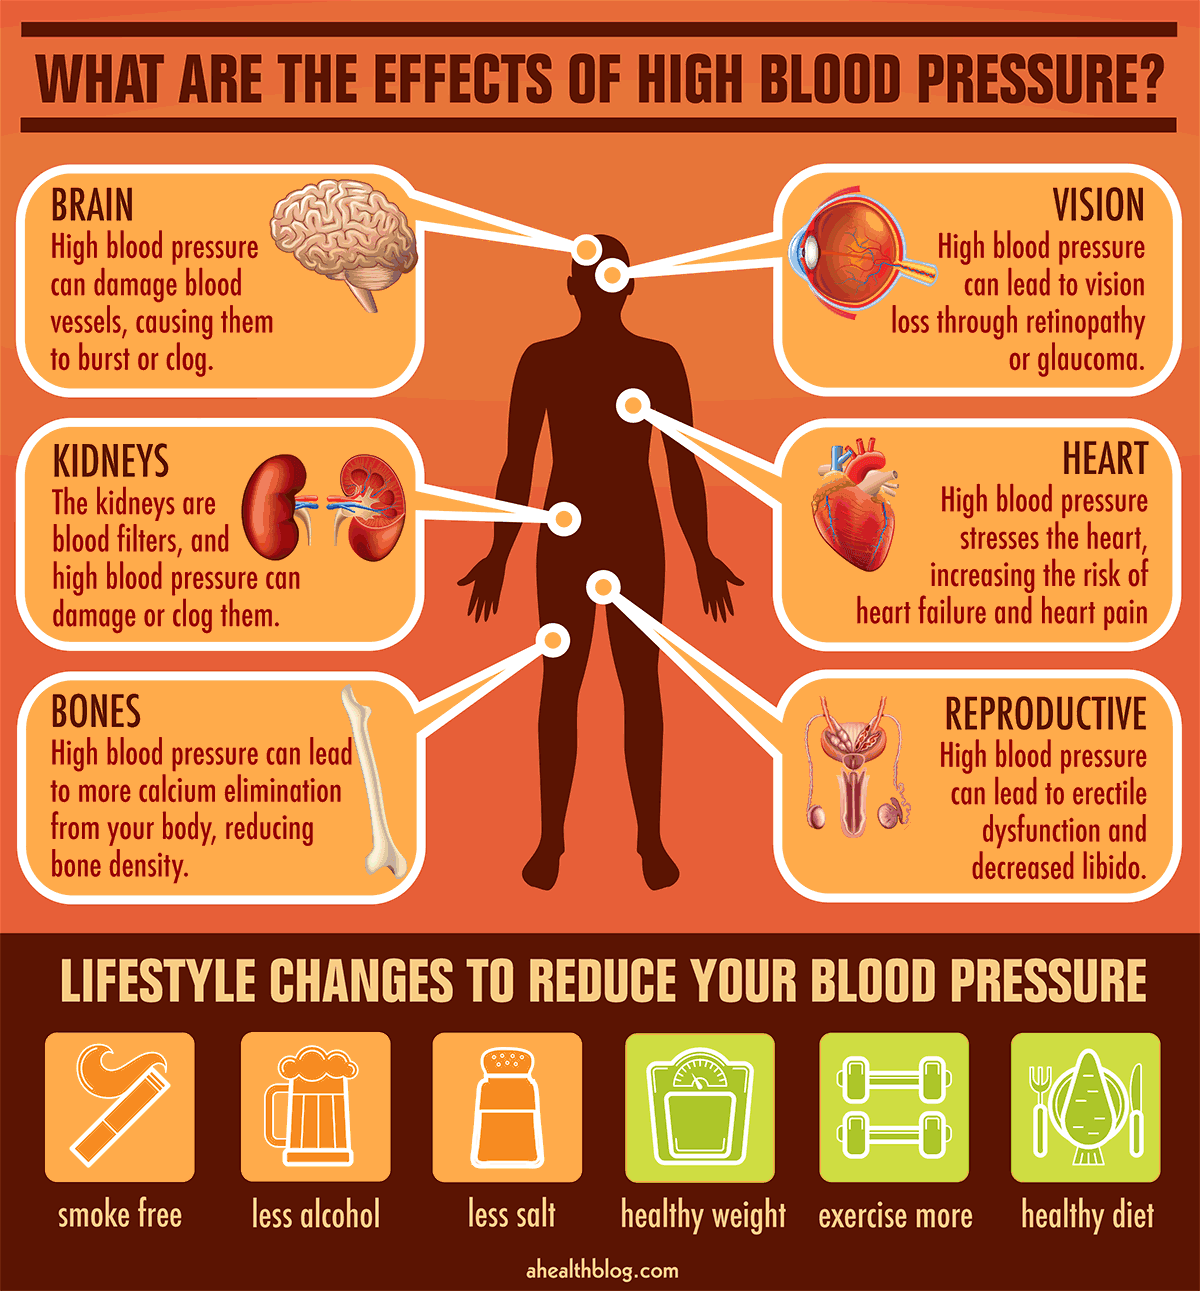 Need For Blood Pressure Meds Can Be Reduced With Lifestyle